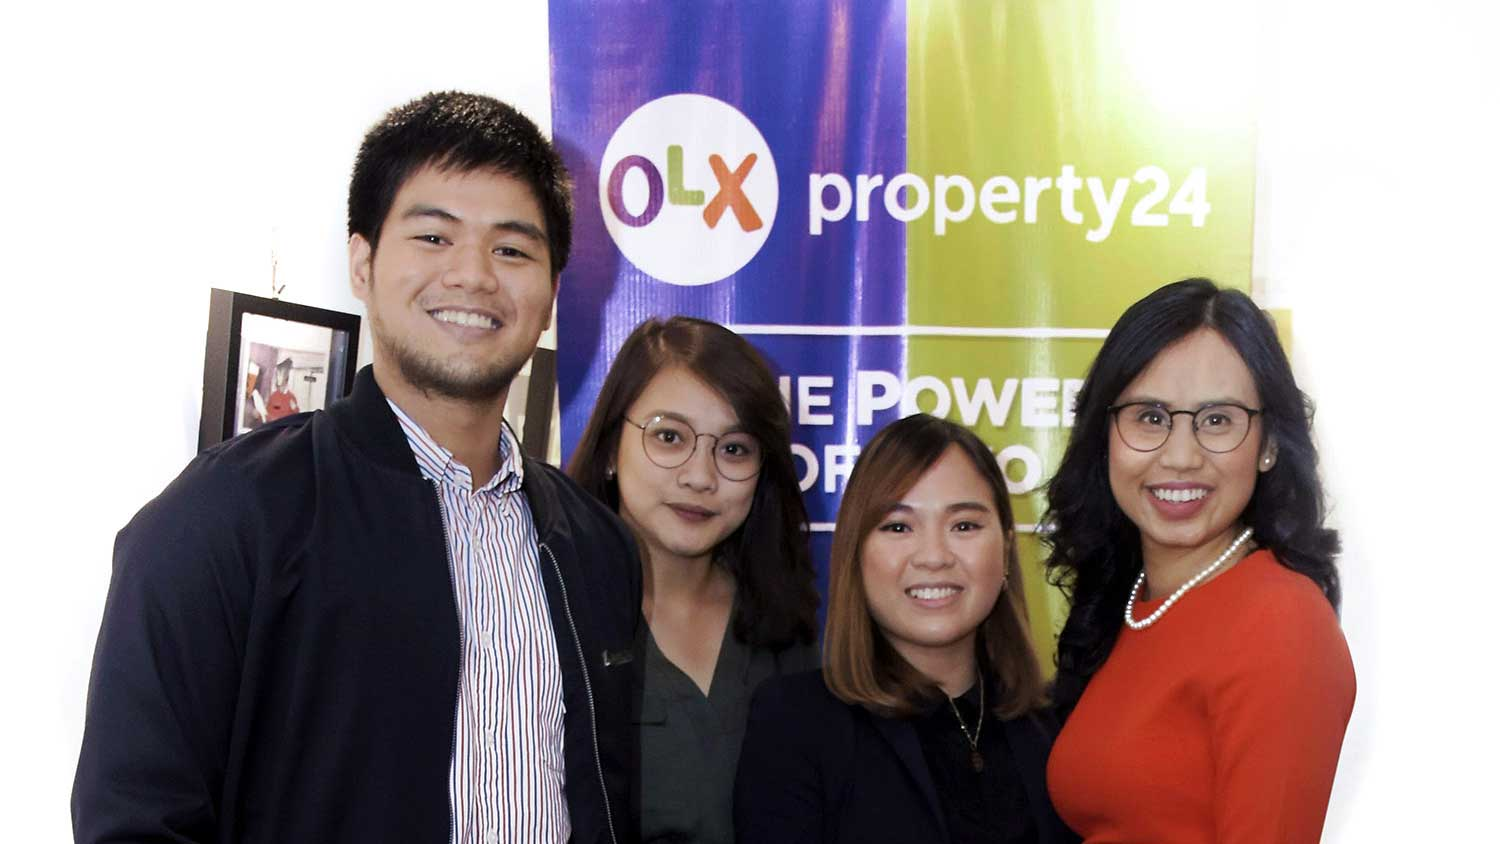 Property 24 highlights latest trends in digital marketing